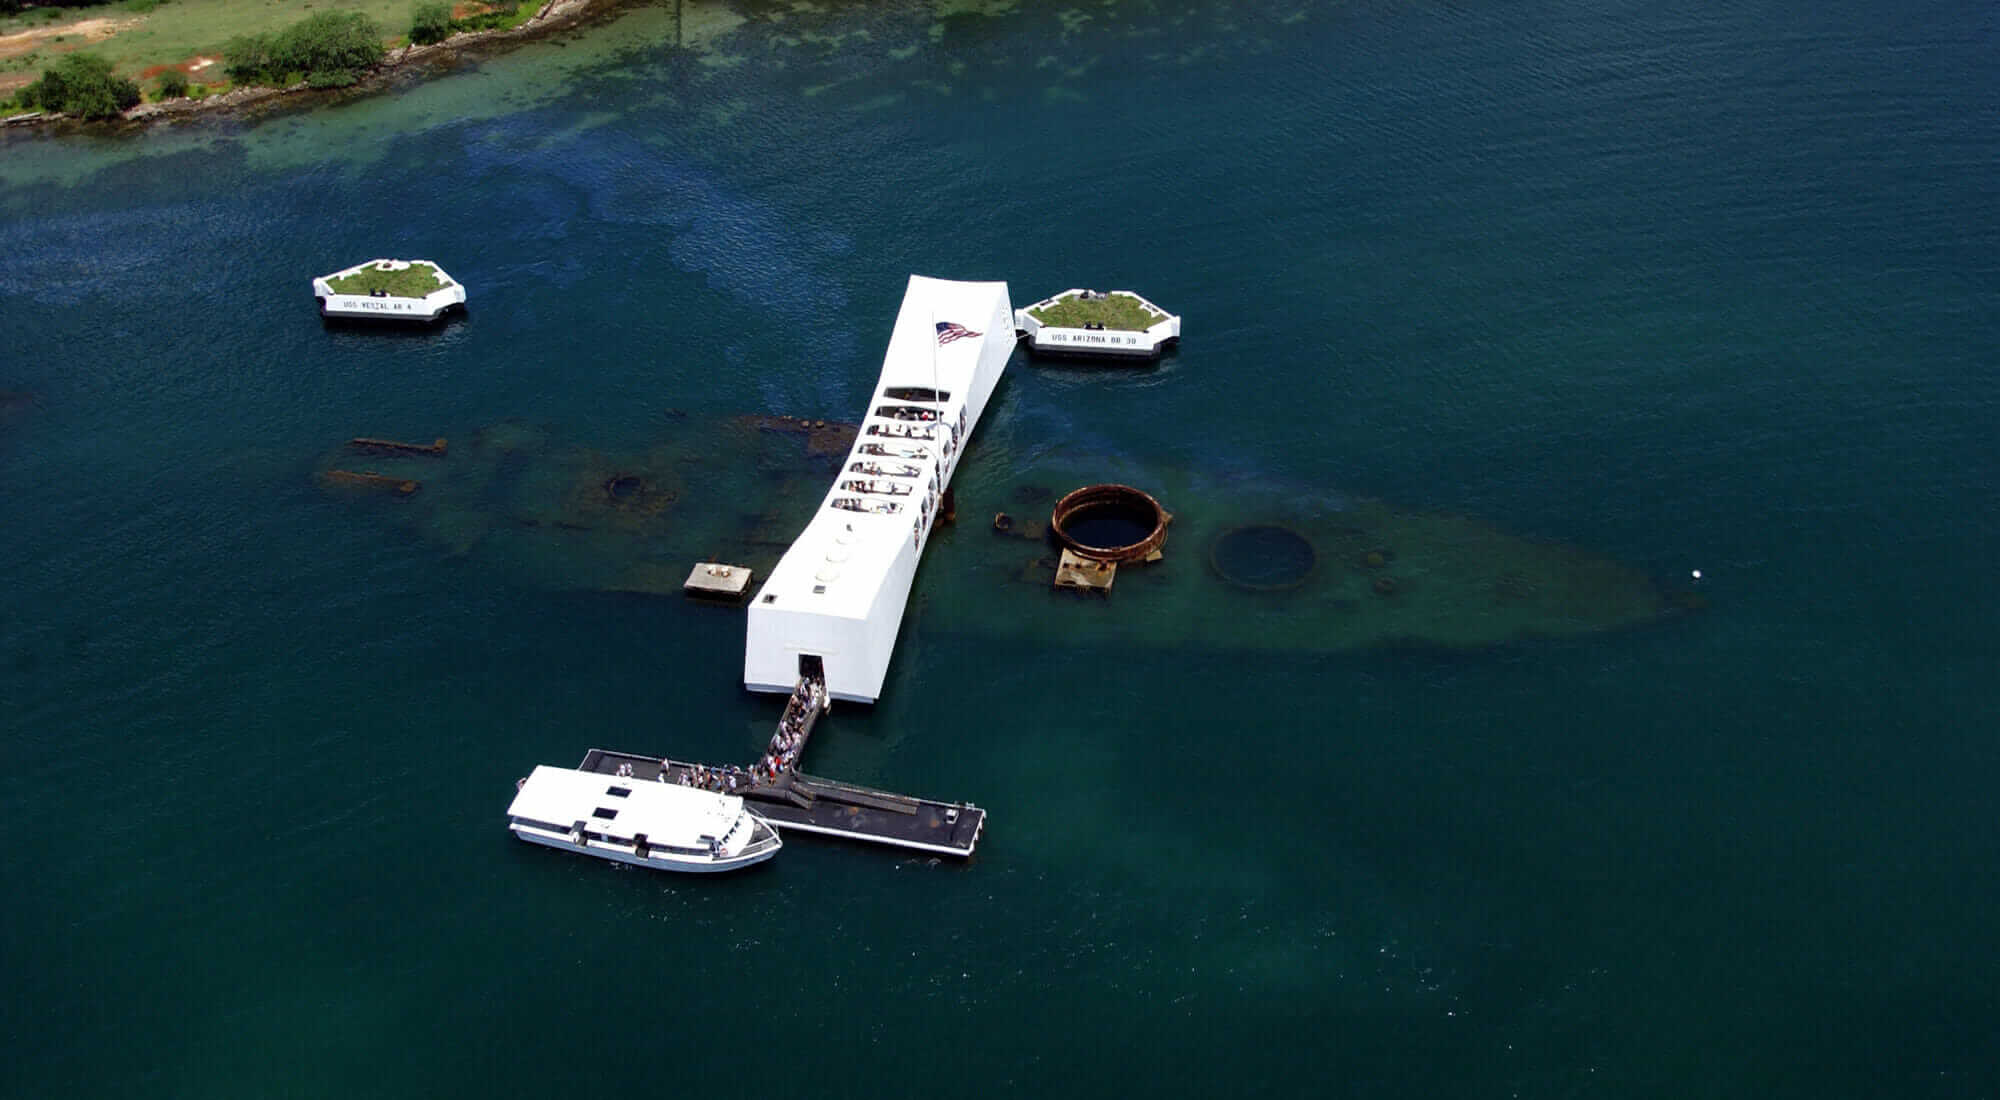 remembering pearl harbor USS Arizona Memorial at Pearl Harbor